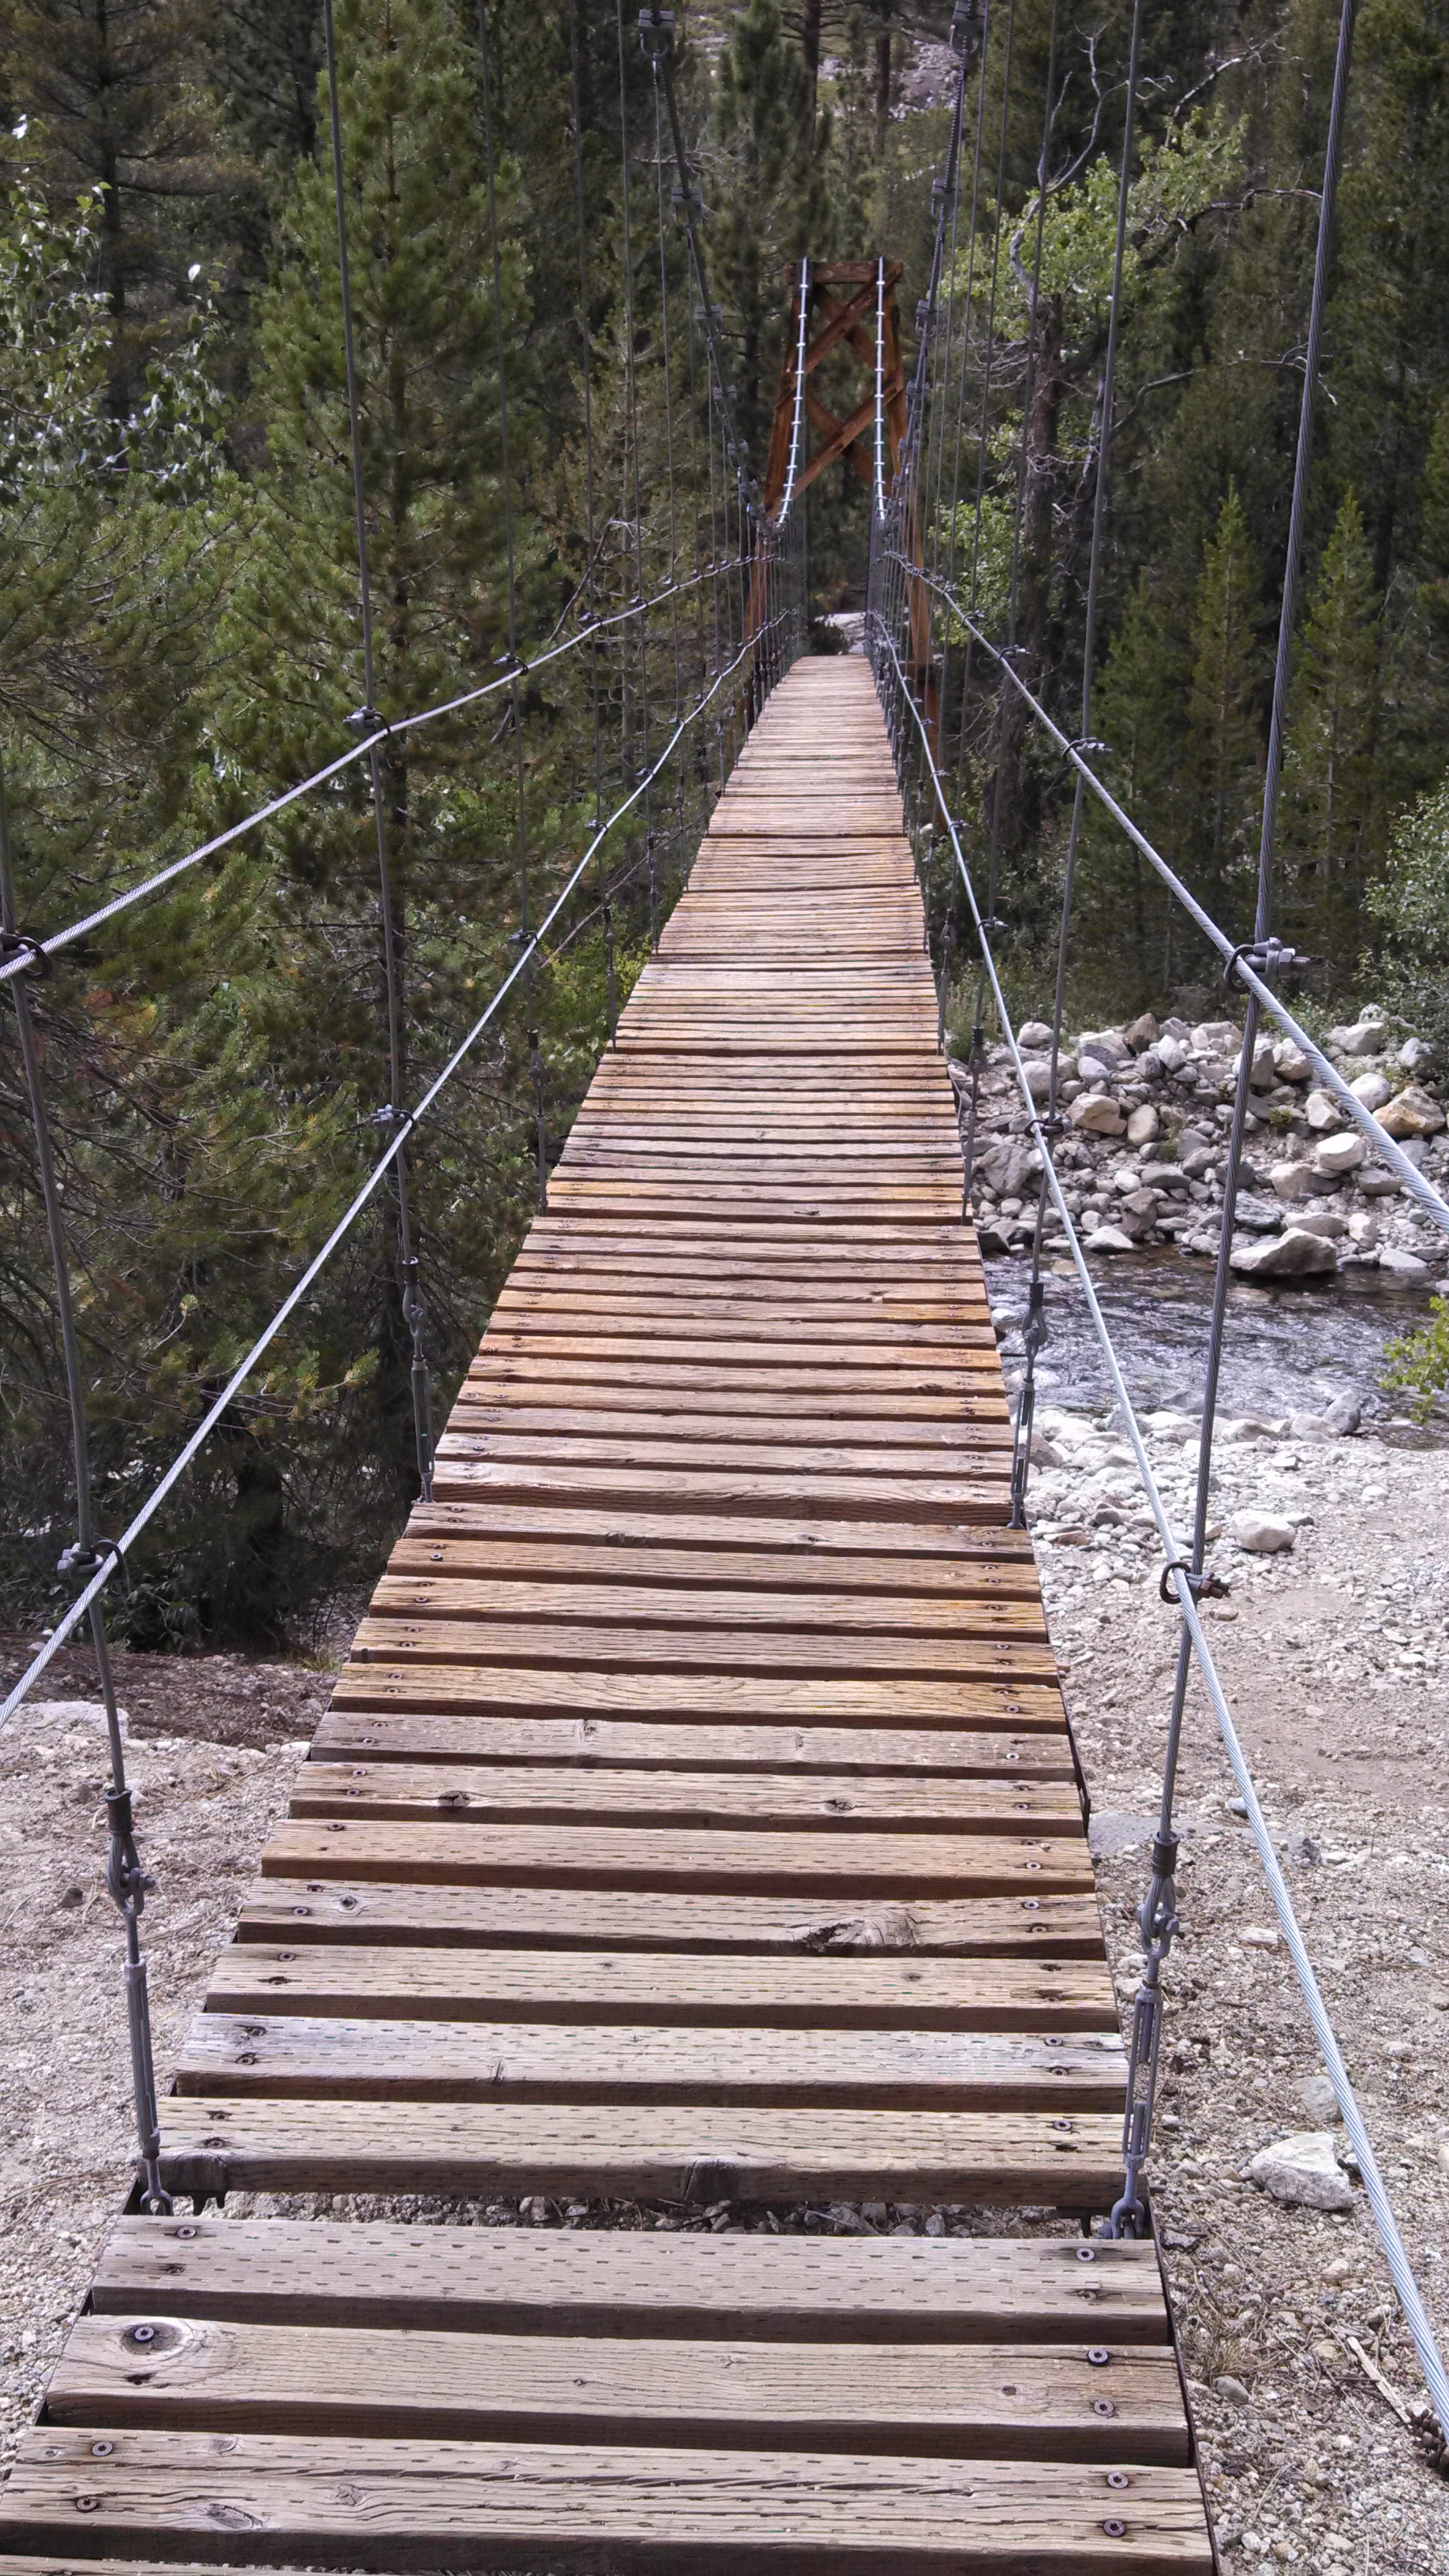 Day 21, Wood's Creek Suspension Bridge